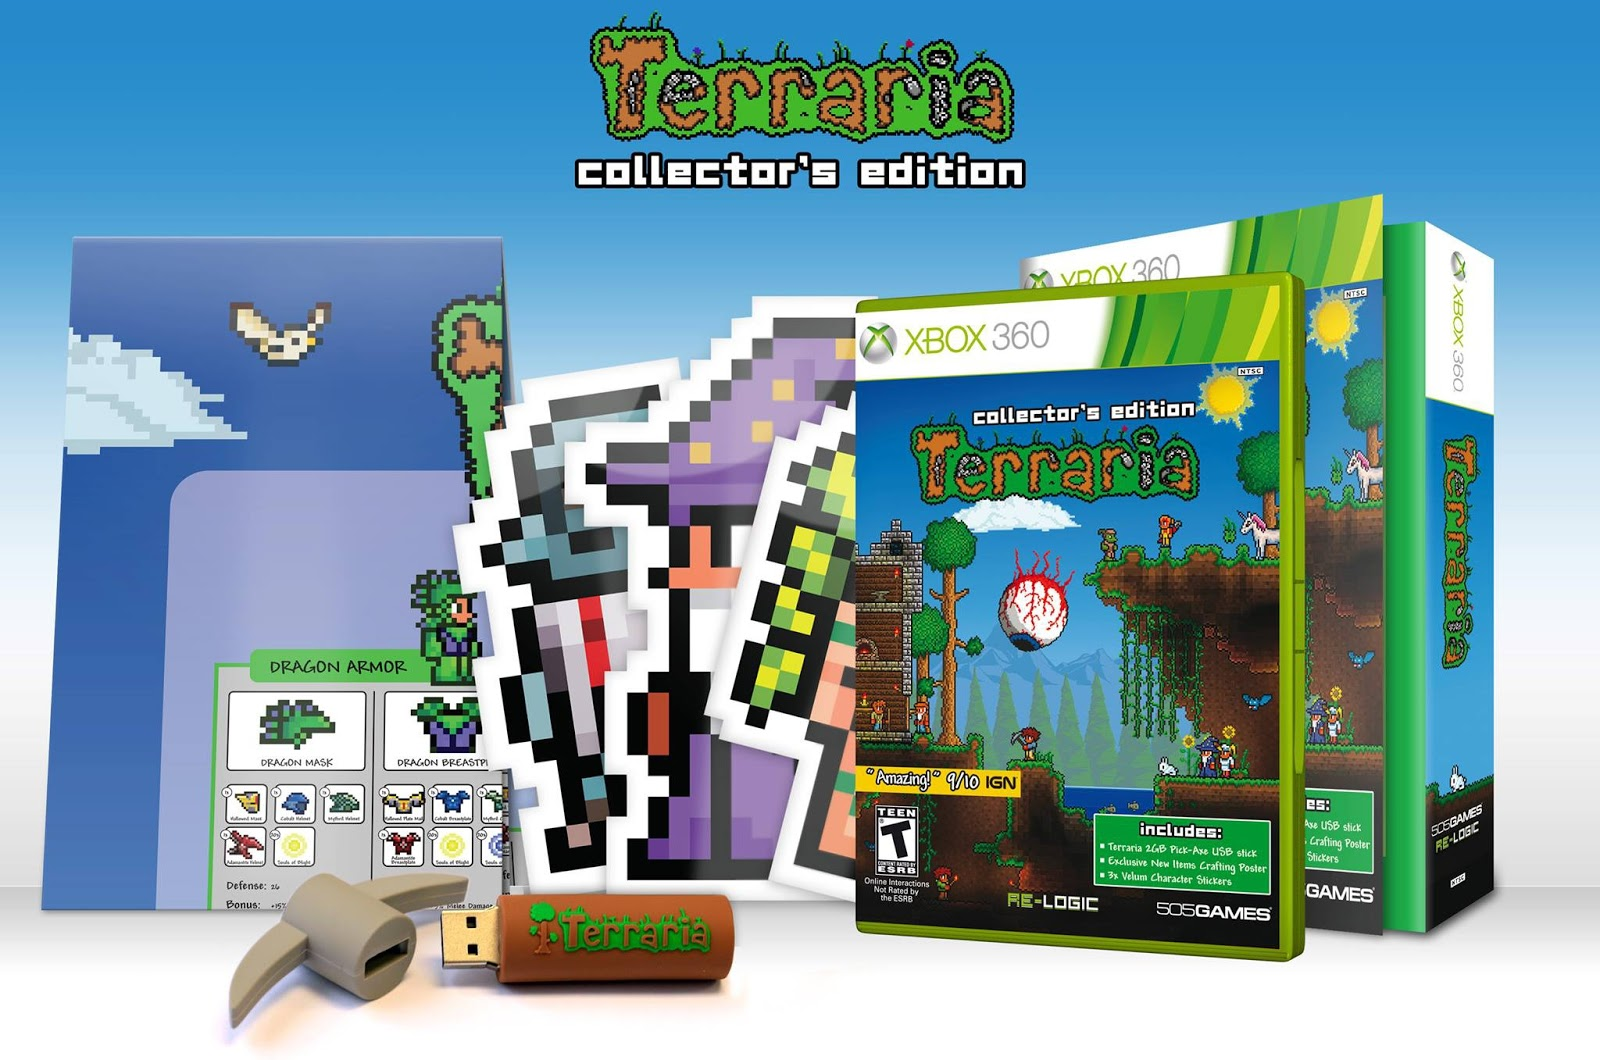 Special terraria collectors edition includes tons of cool content special terraria collectors edition includes tons of cool content publicscrutiny Image collections